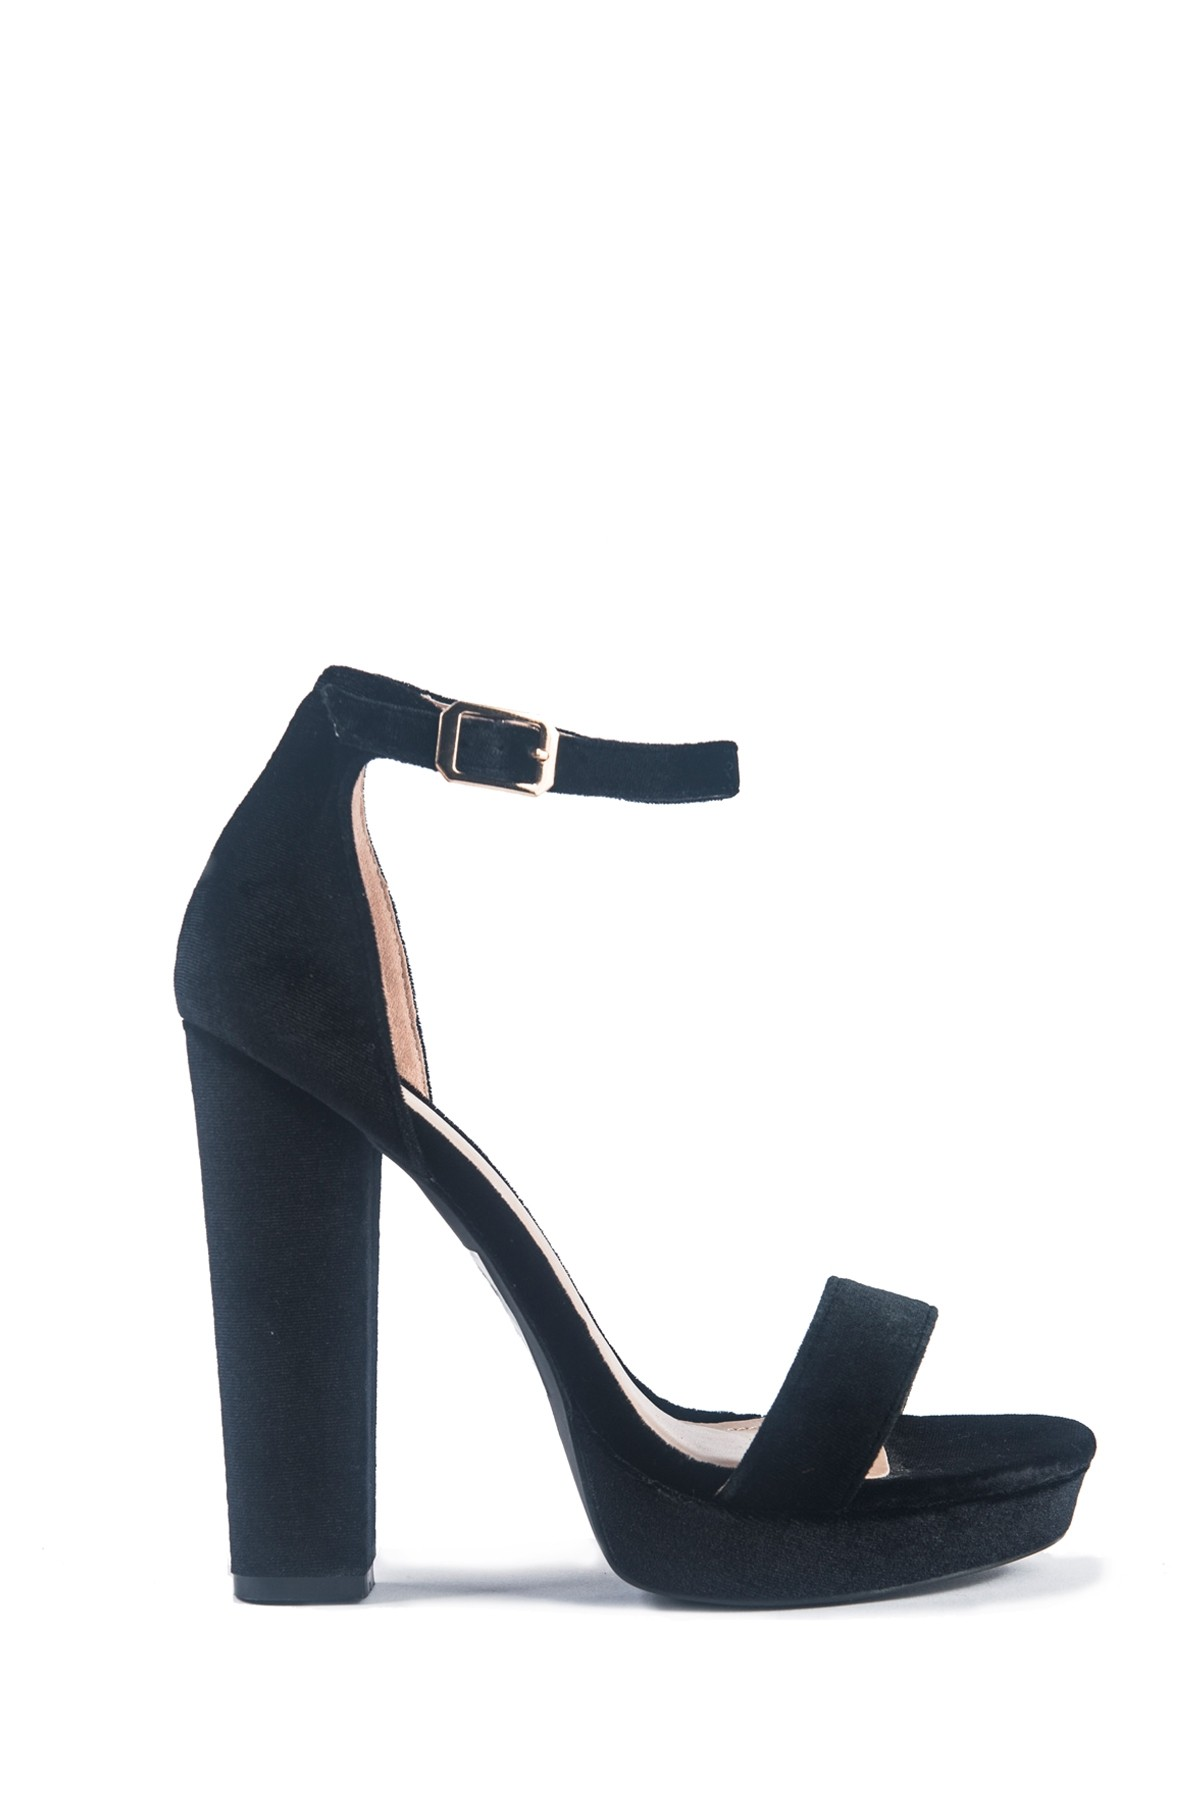 black open toe heels trend-pay-black-open-toe-platform-heels-2 TZTPVBI